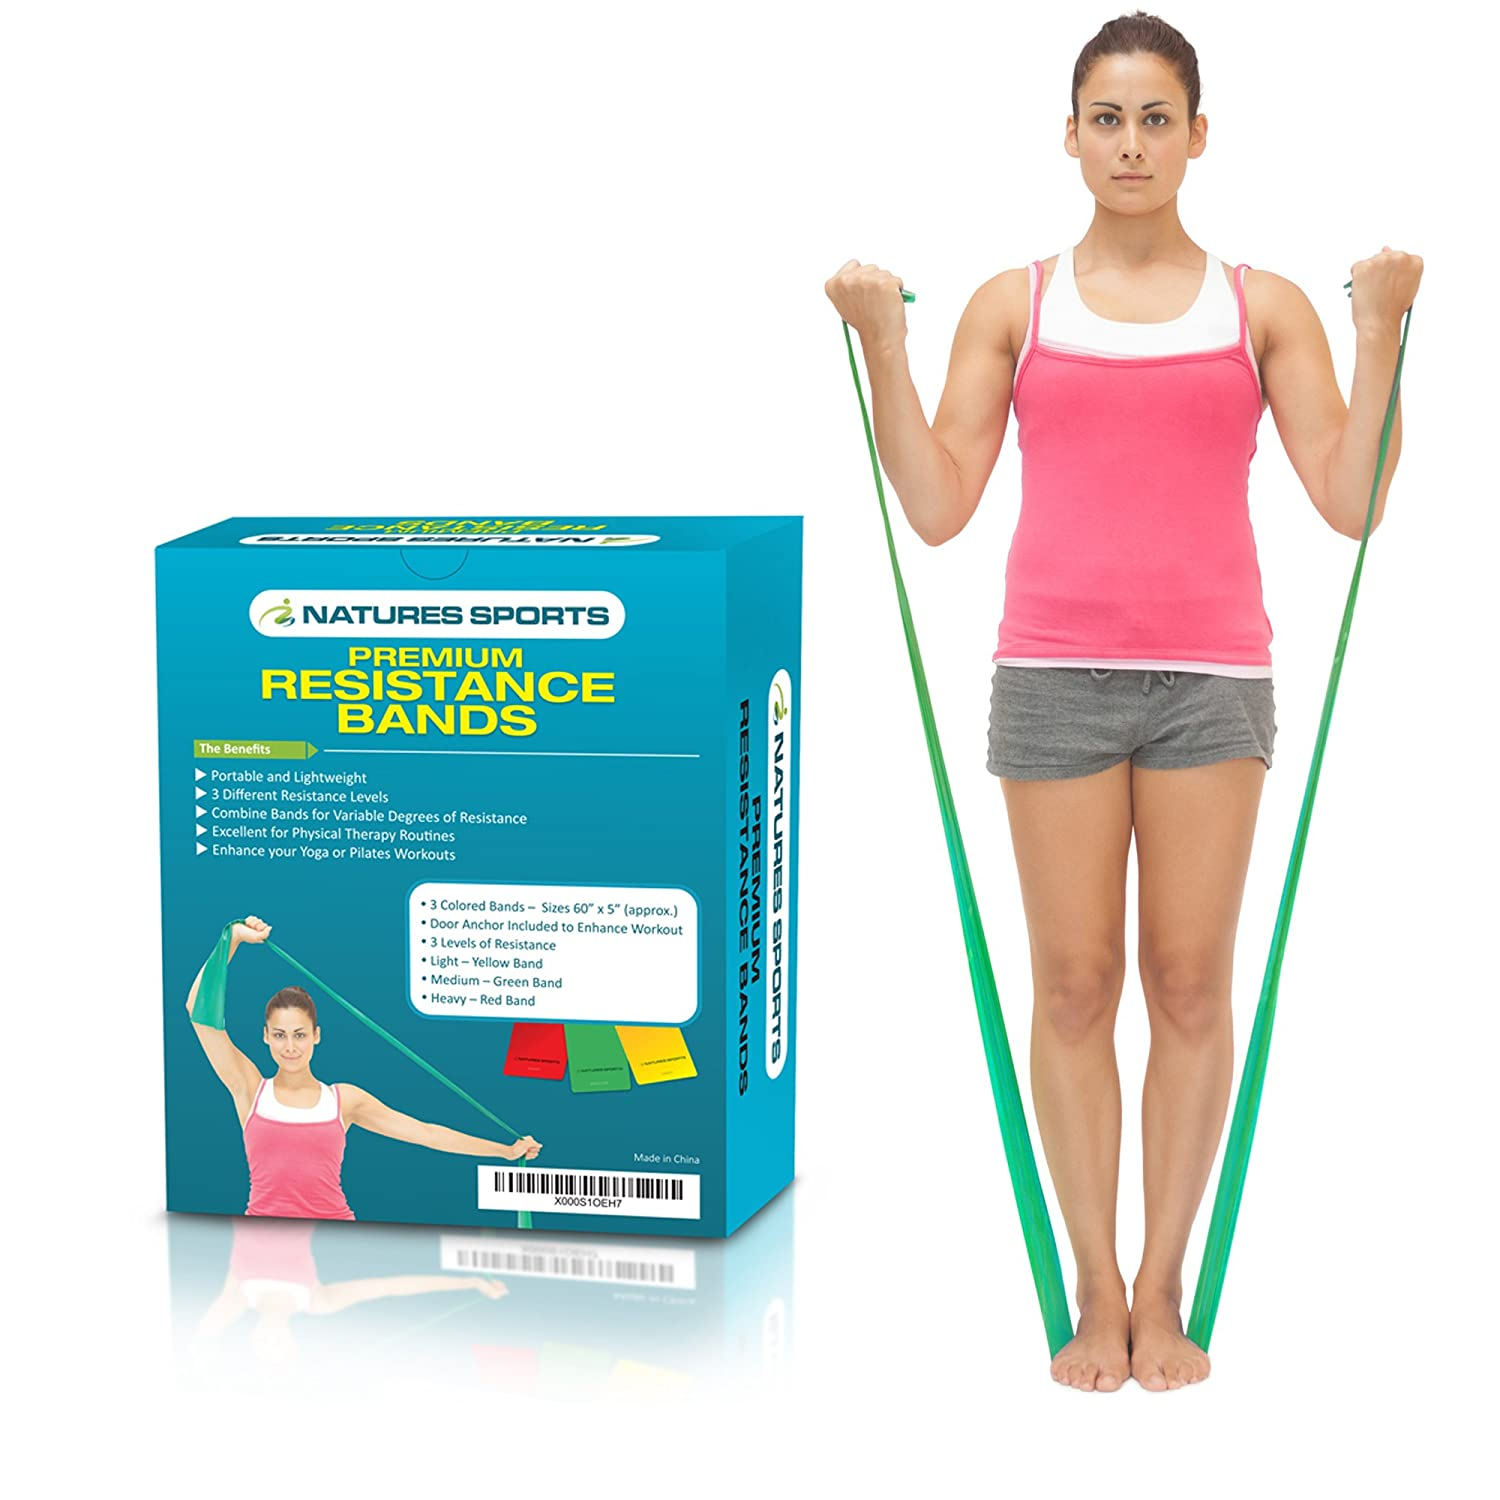 Flat Exercise Stretch Bands 3 x Resistance Bands Set (Light Medium Heavy) Latex Free - Physical Therapy Bands Resistance Exercise Bands for Yoga ...